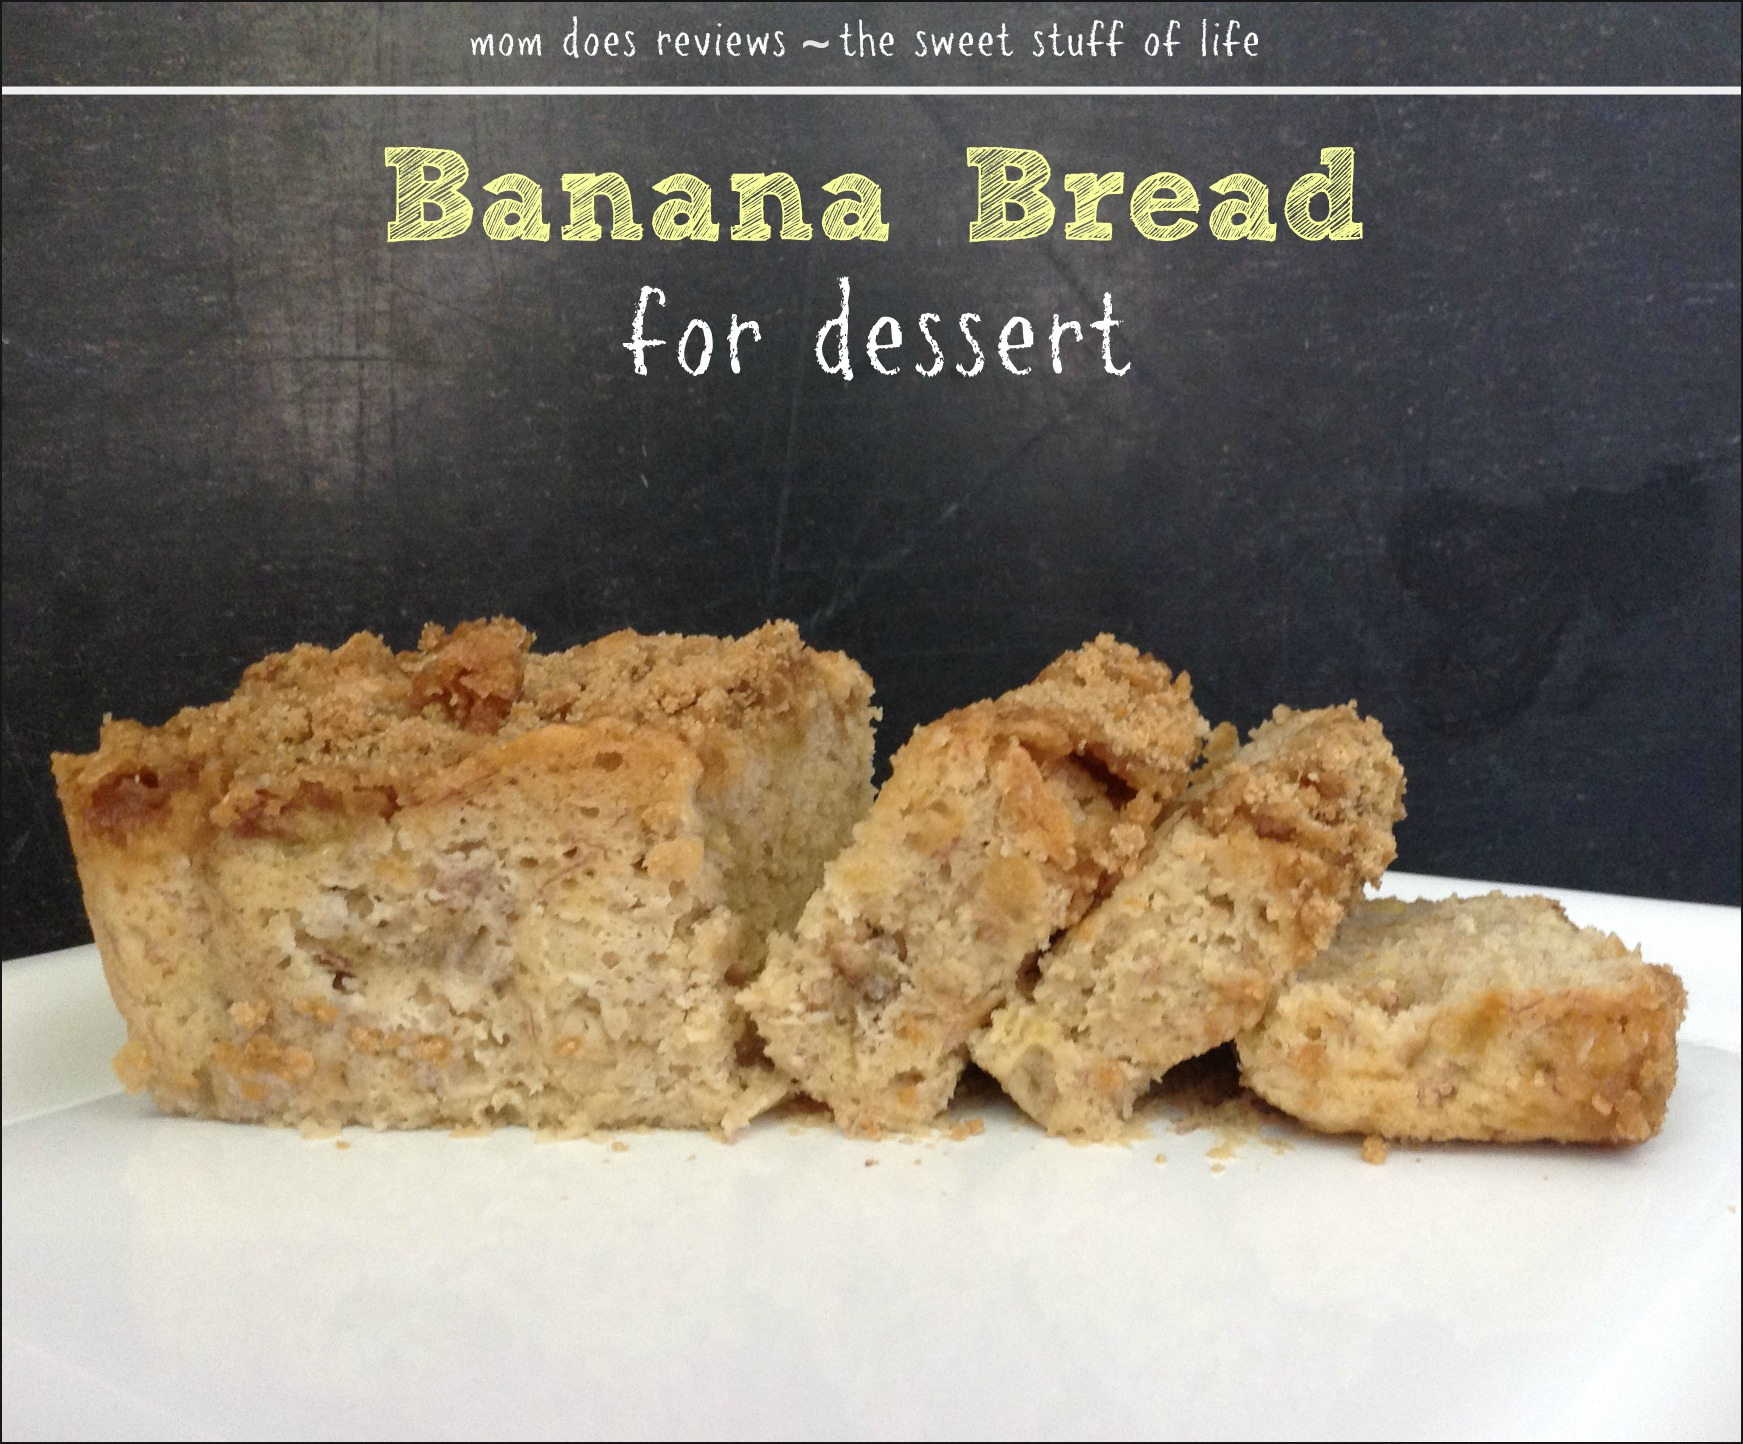 Recipes at Mom Does Reviews | Banana Bread with Streusel Topping | Bread Contains No Eggs Milk or Oil  (less than 1 tbsp of shortening in the topping only)